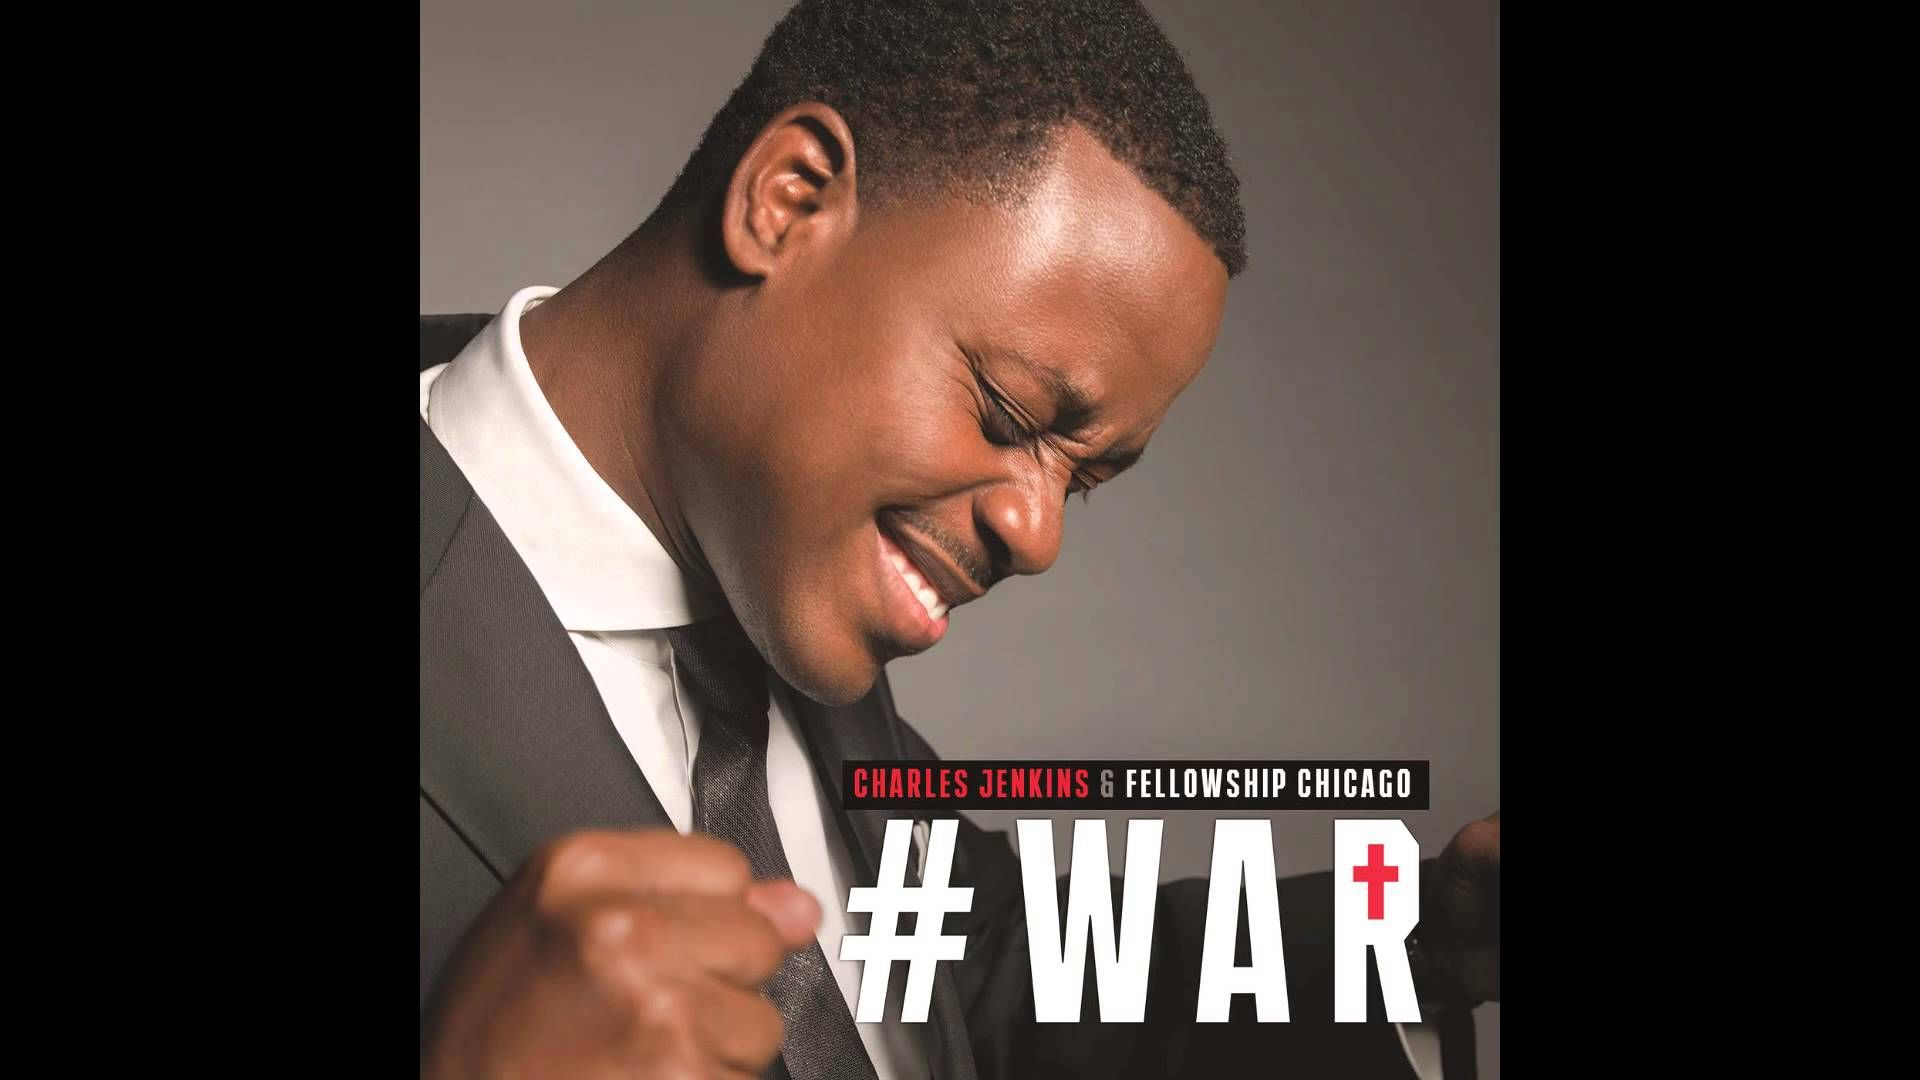 War (lyrics) – Charles Jenkins